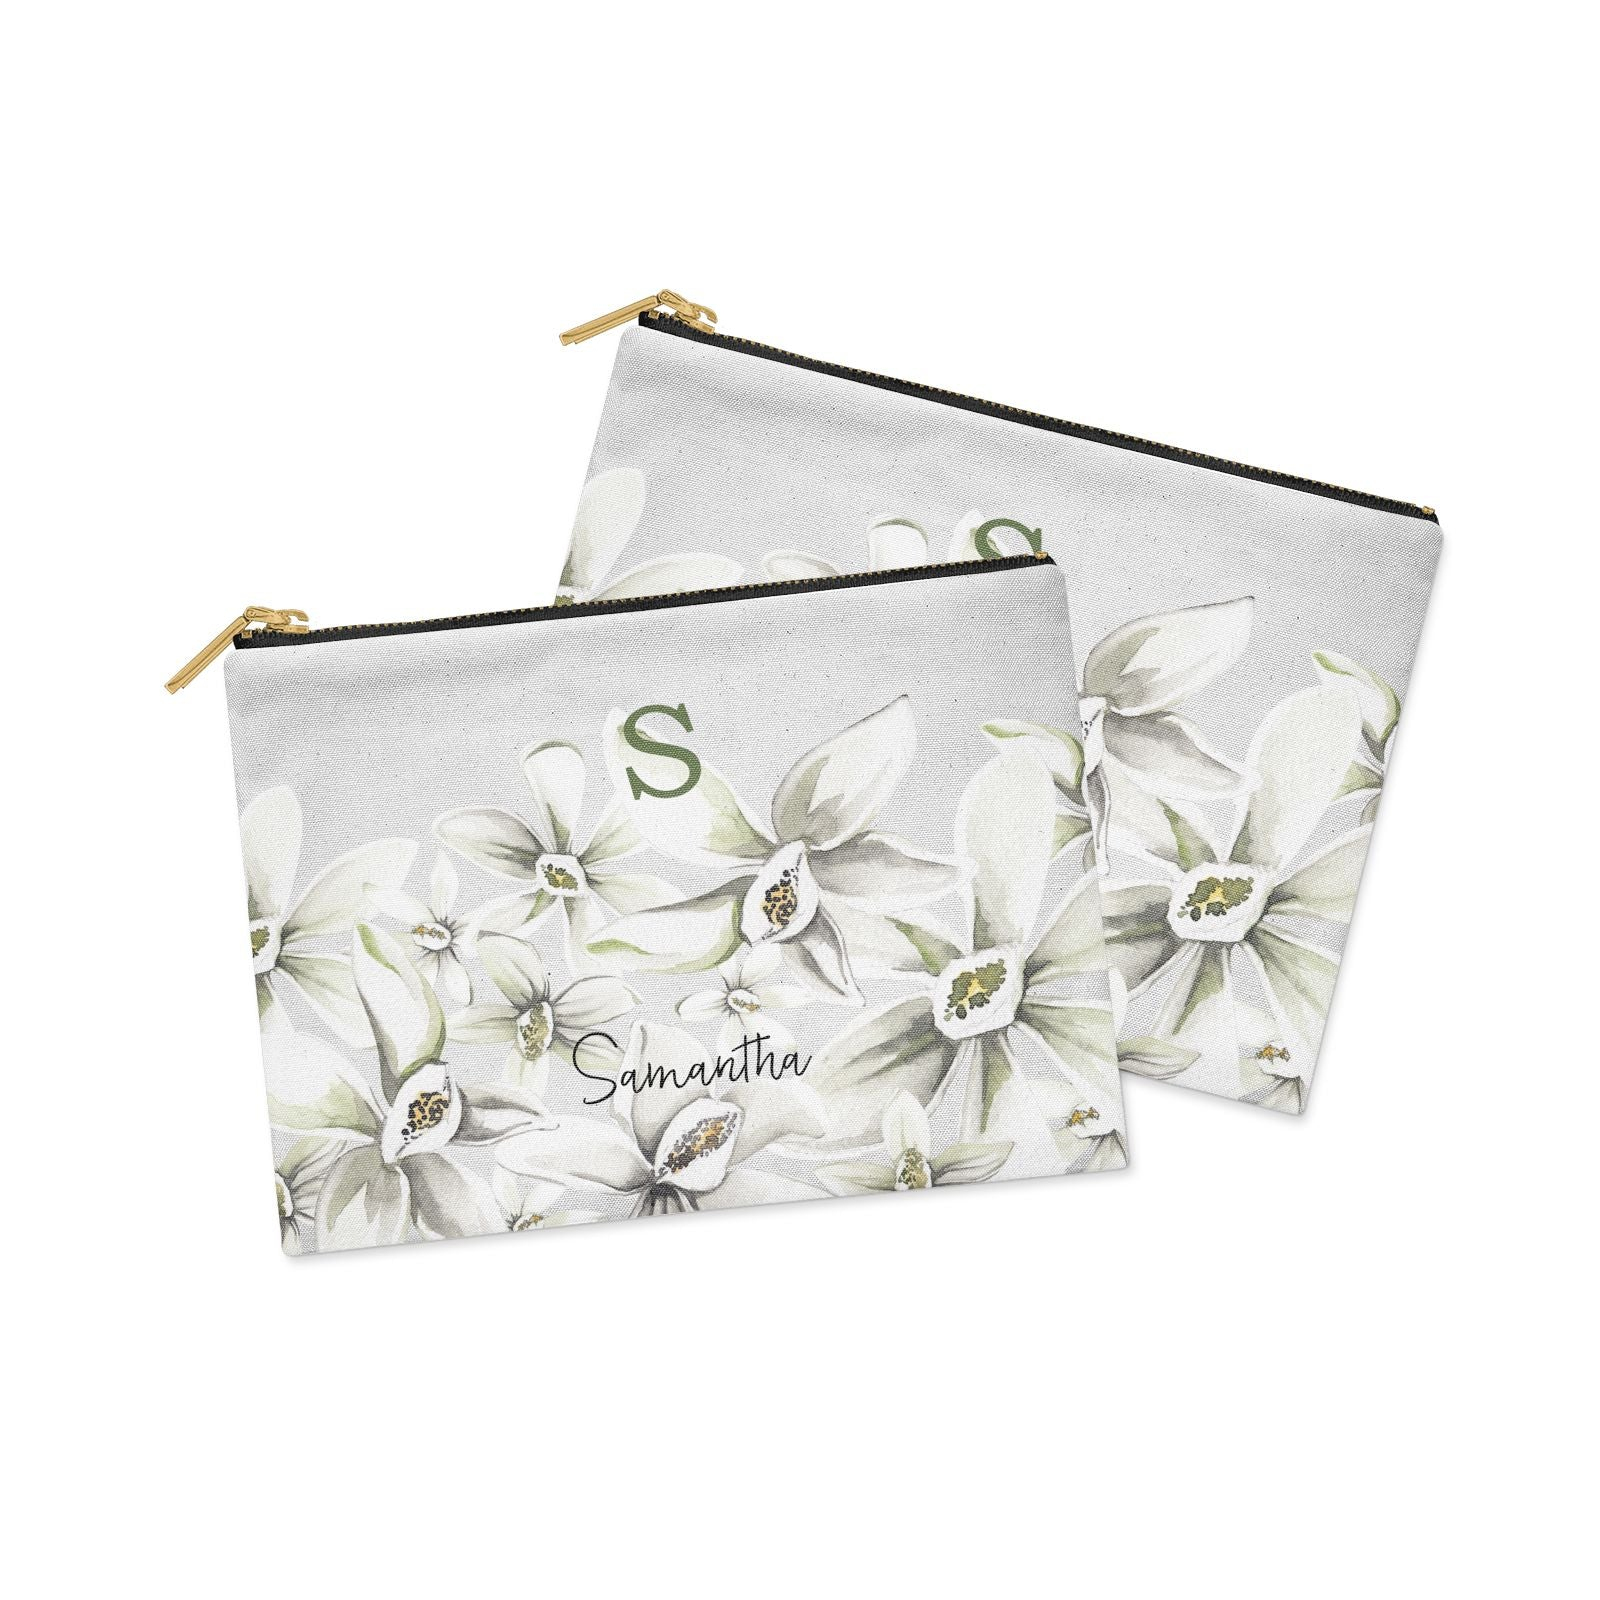 Personalised Orange Blossom Clutch Bag Zipper Pouch Alternative View